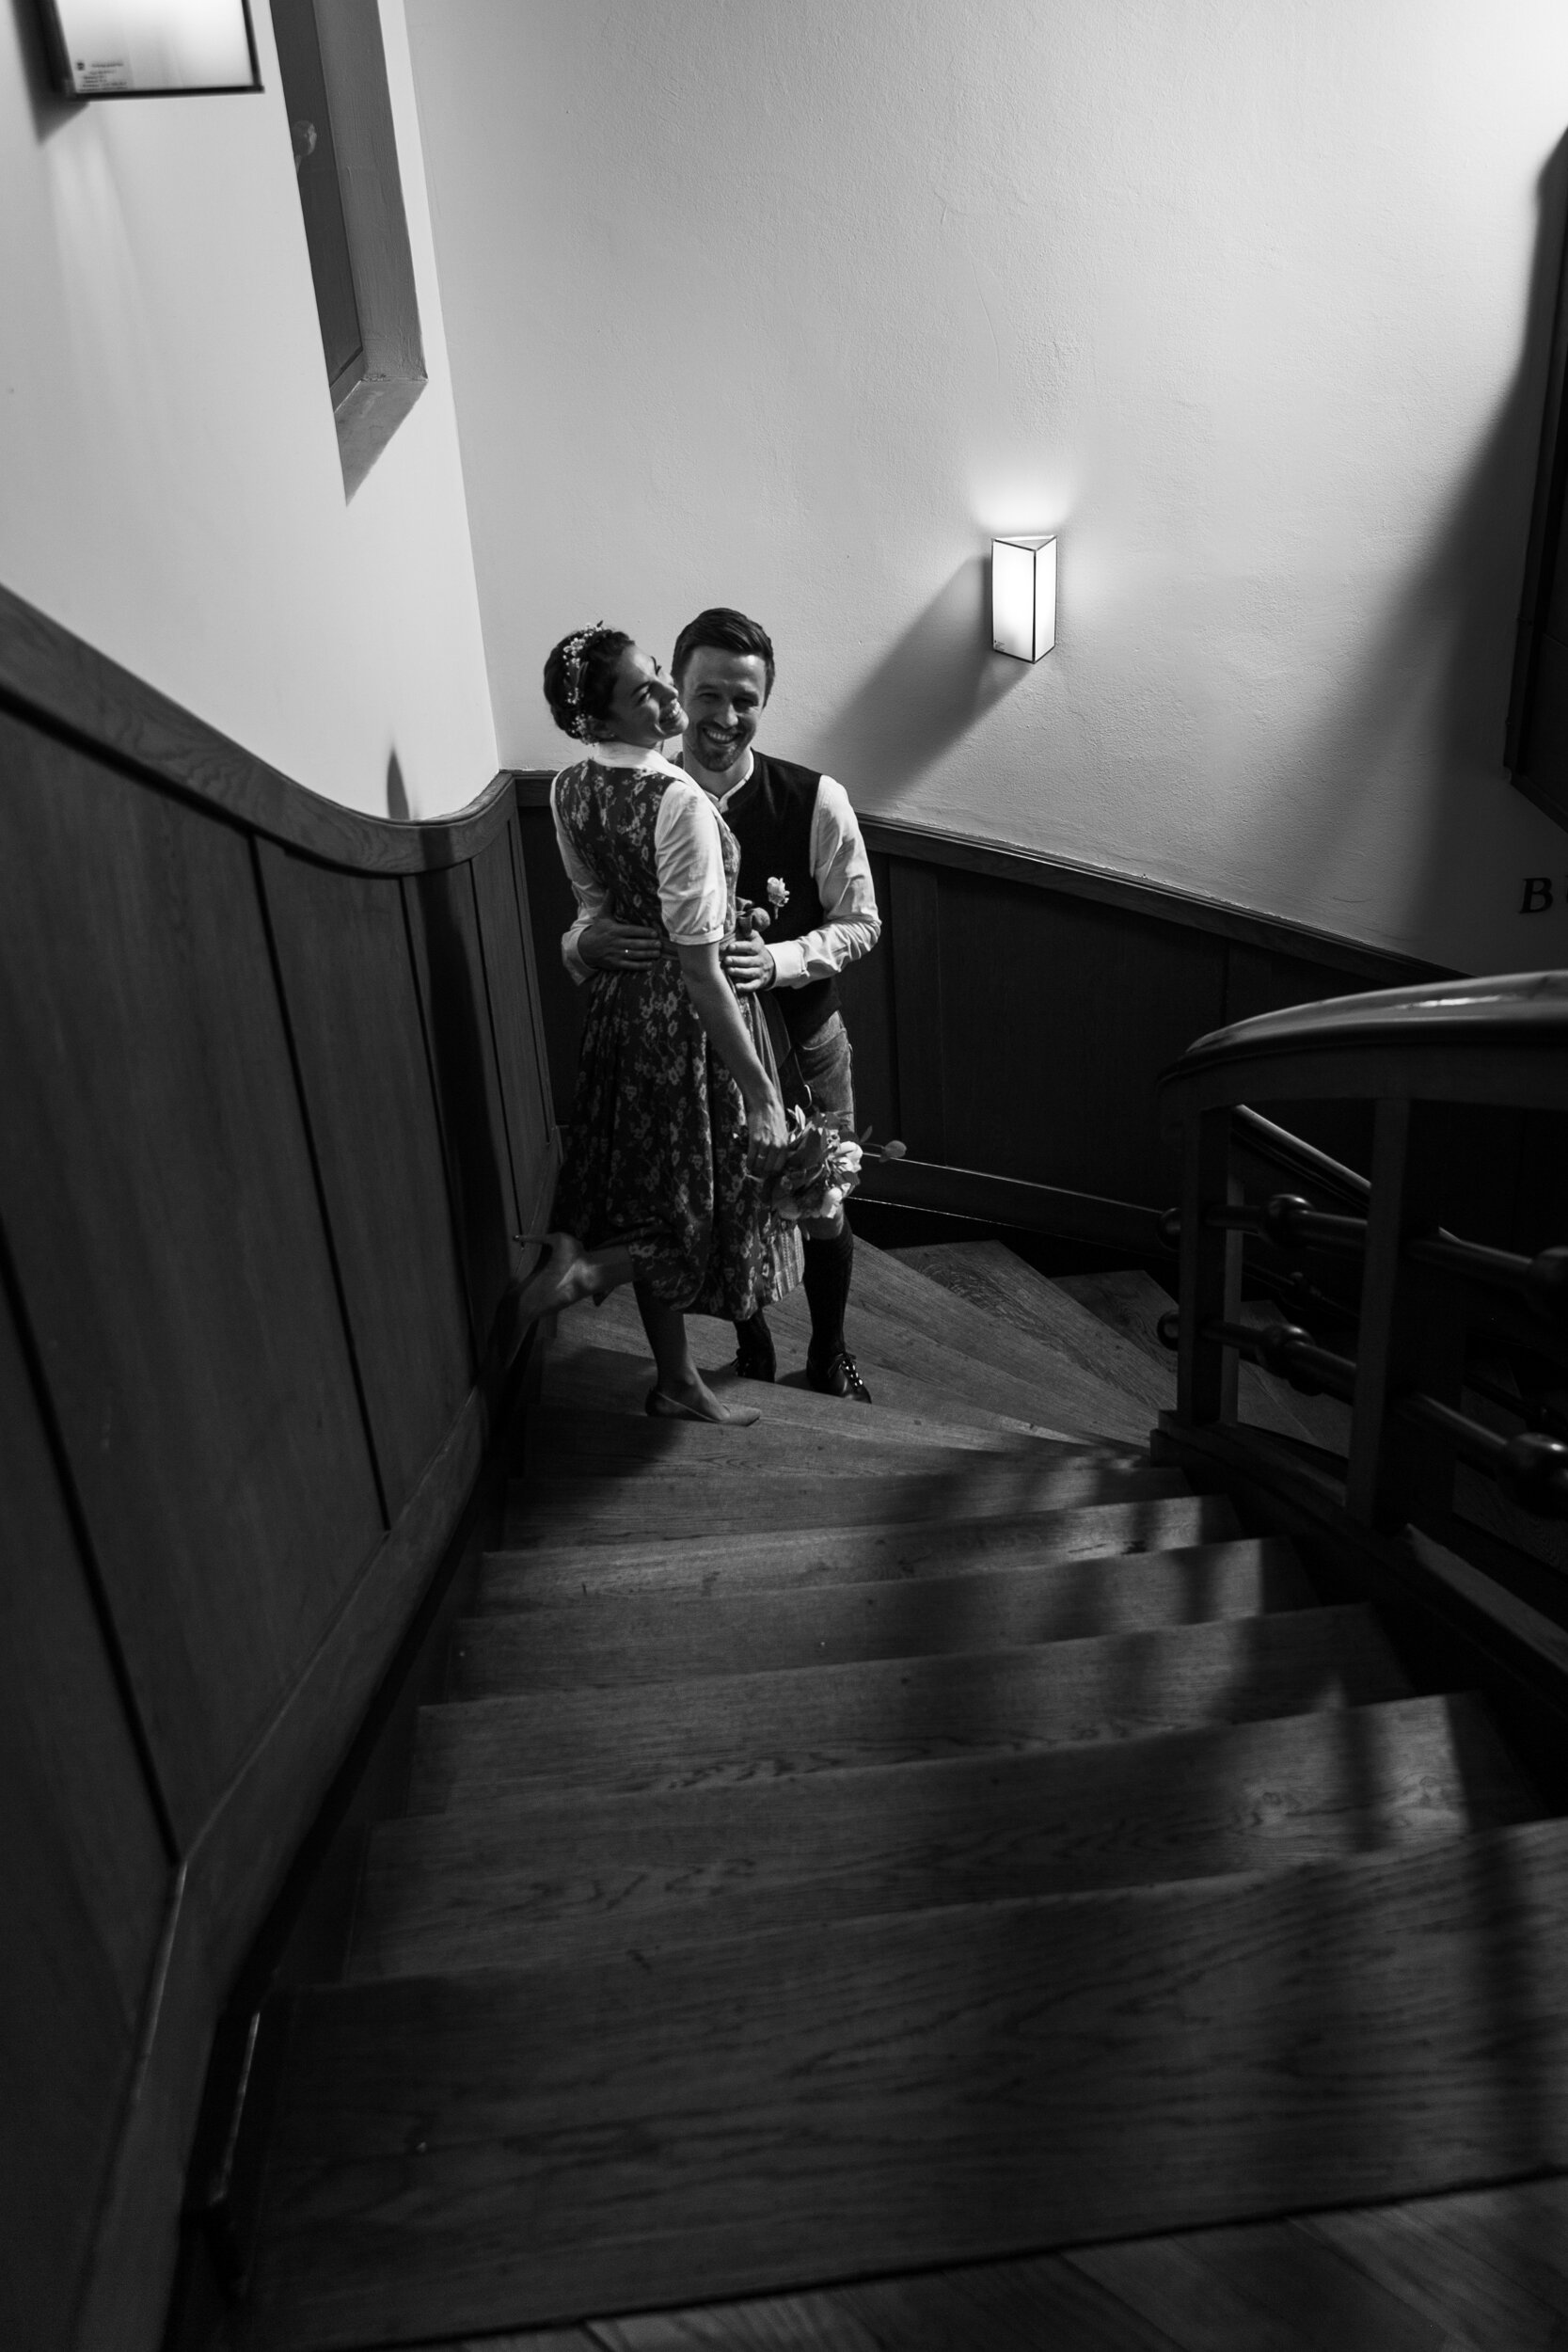 A portrait session on the stairs after a wedding at the Standesamt (registrar) in Mayrhofen